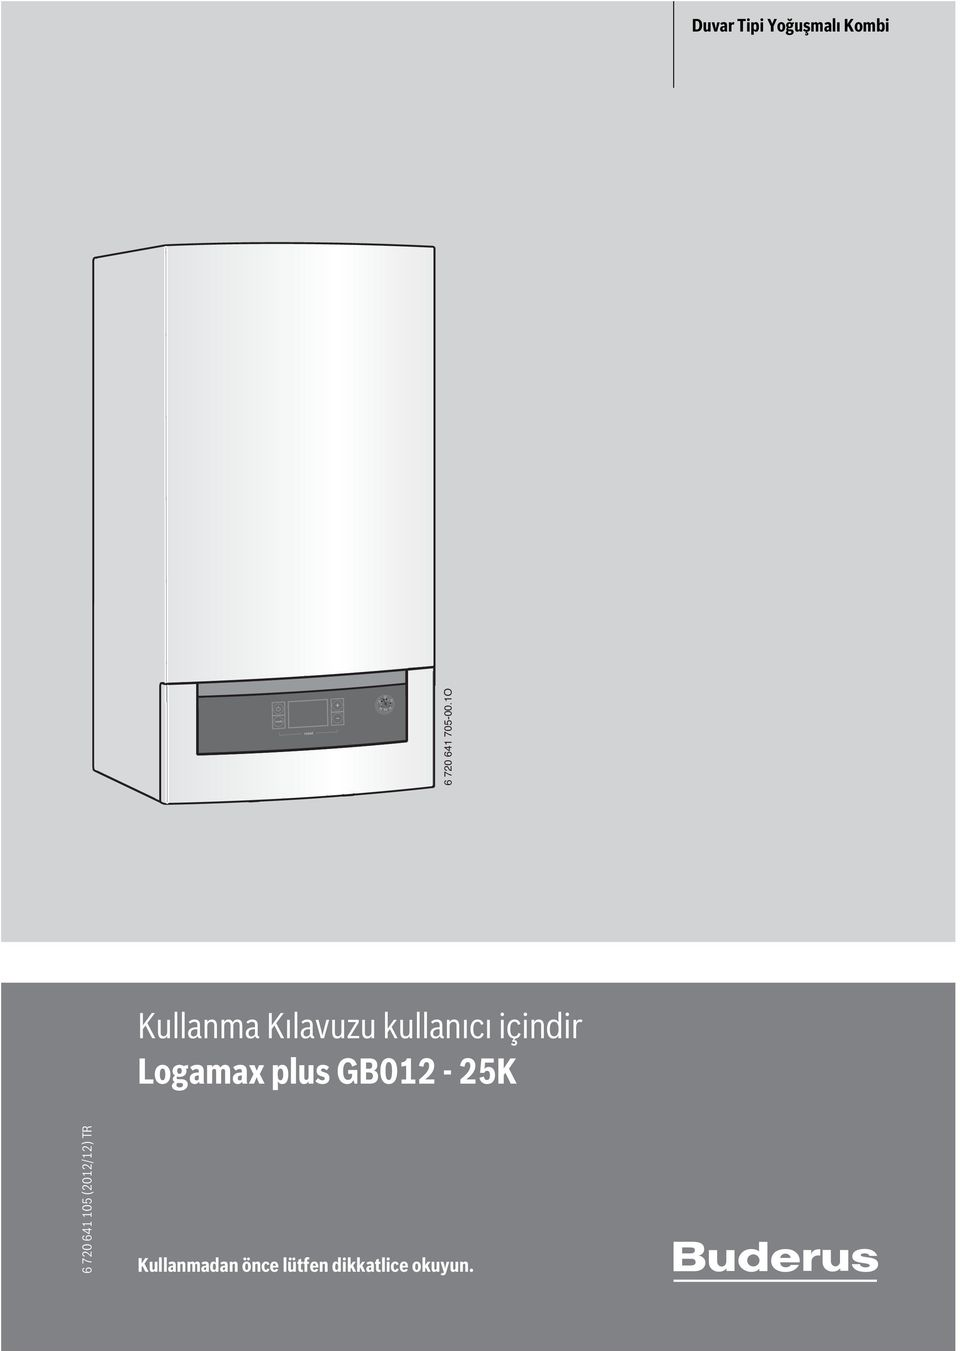 Logamax plus GB012-25K 6 720 641 105